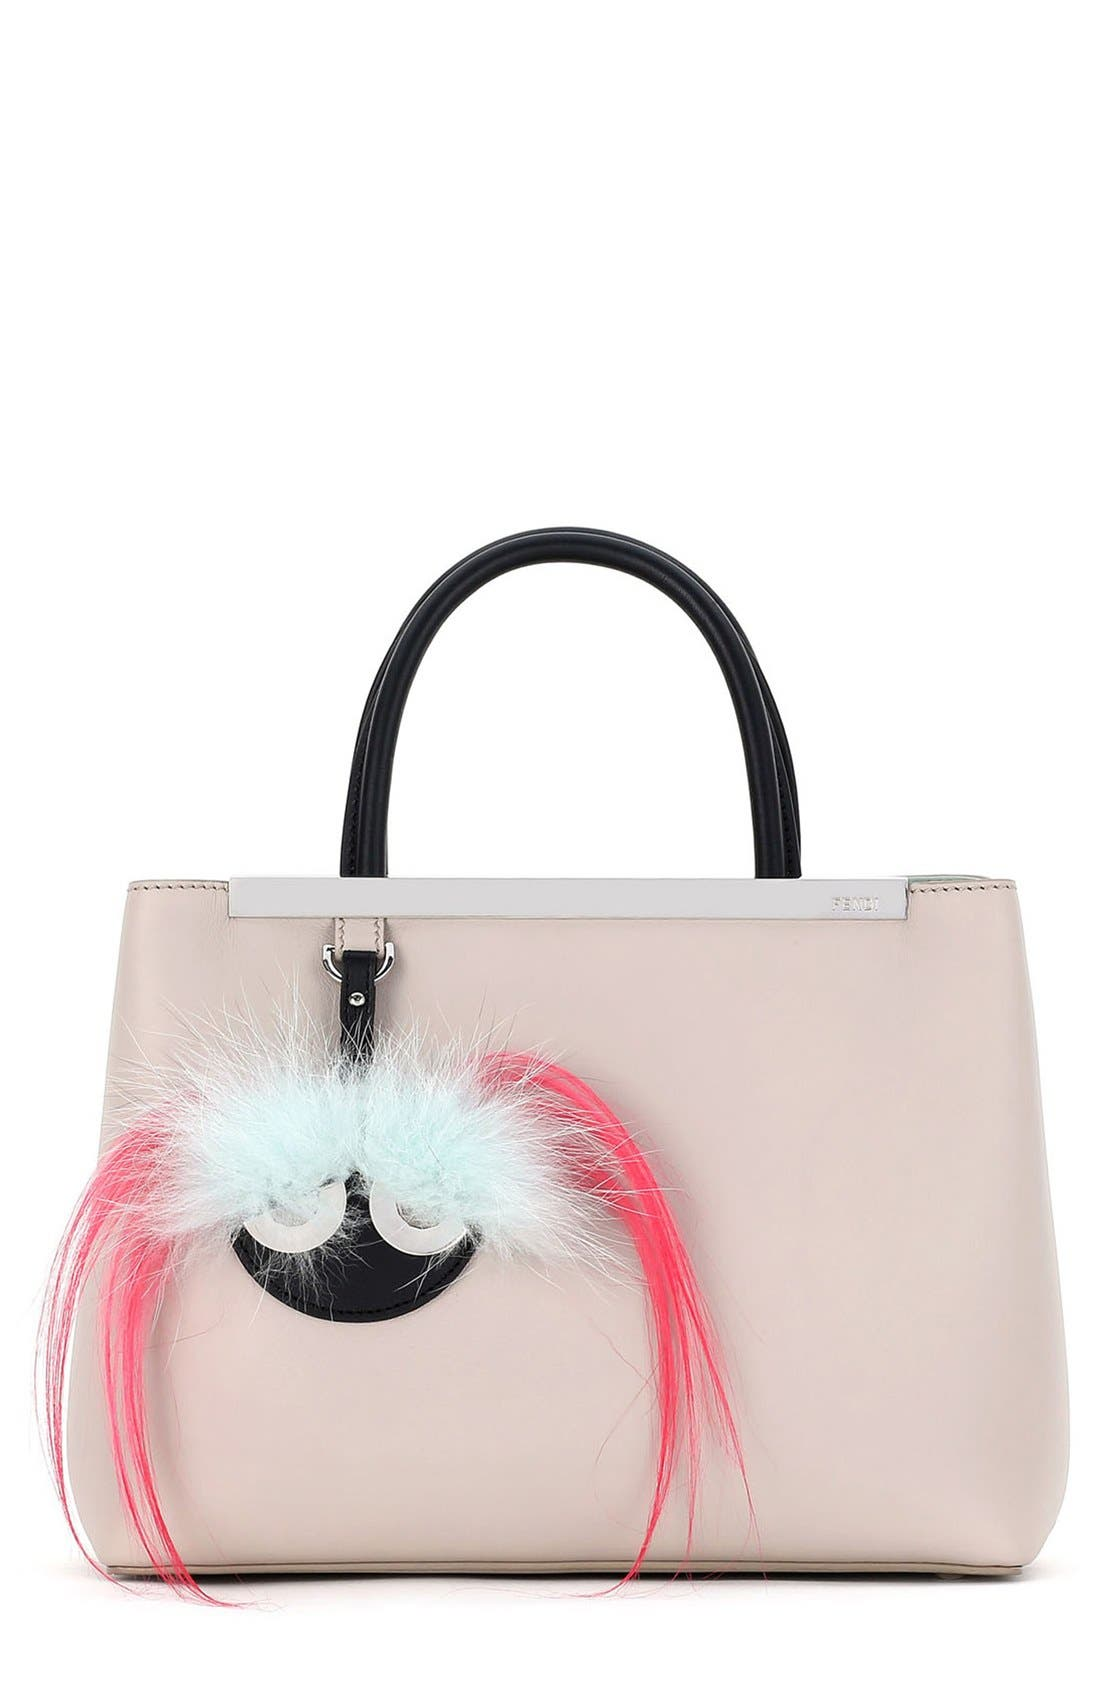 Main Image - Fendi 'Petite 2Jours' Bicolor Leather Shopper with Genuine Fox & Kidassia Fur Monster Charm